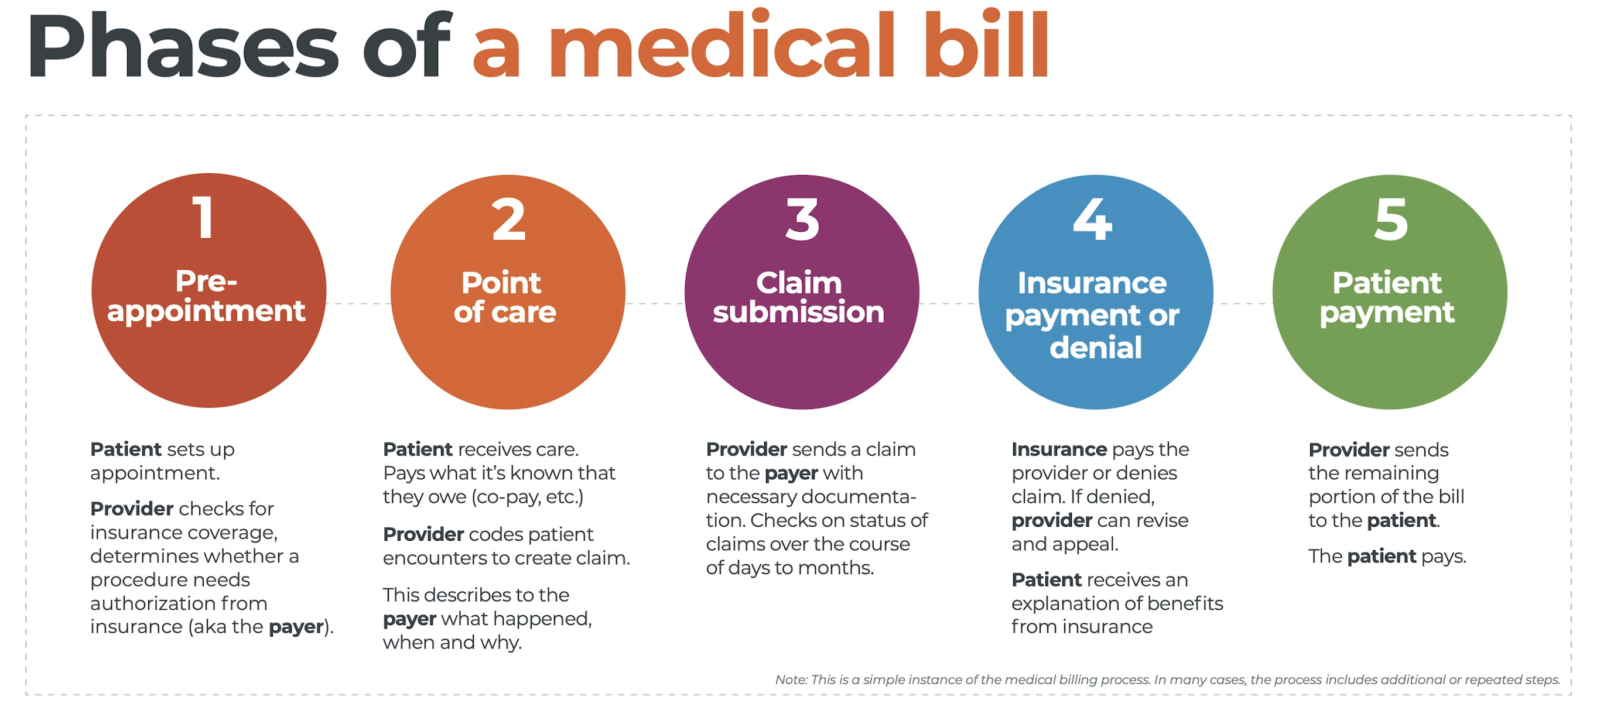 Phases of a medical bill